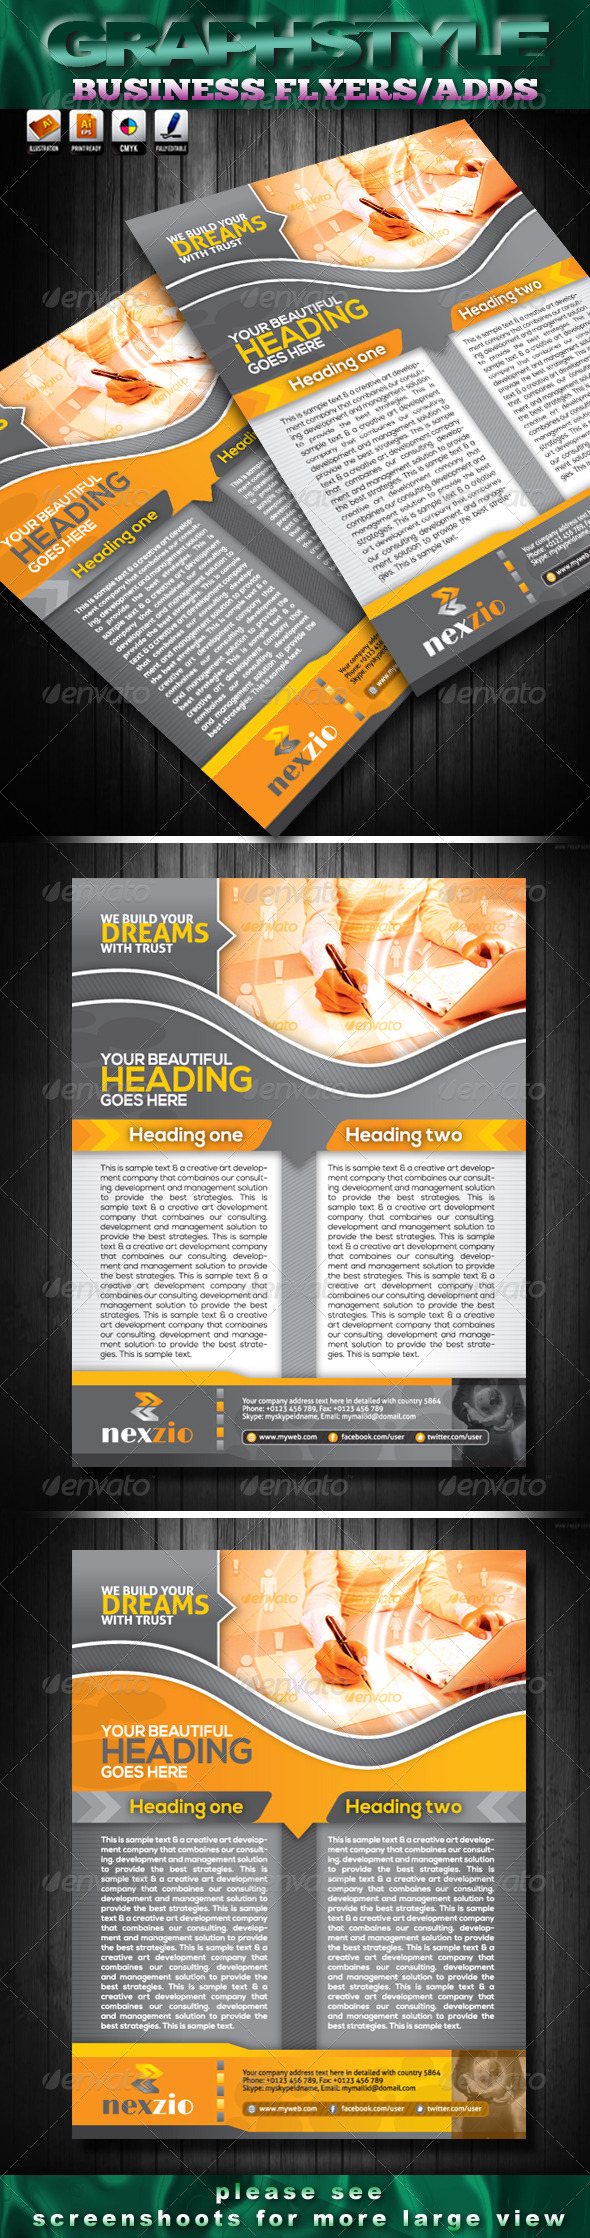 GraphicRiver nexzio Business Flyers Adds 4044098